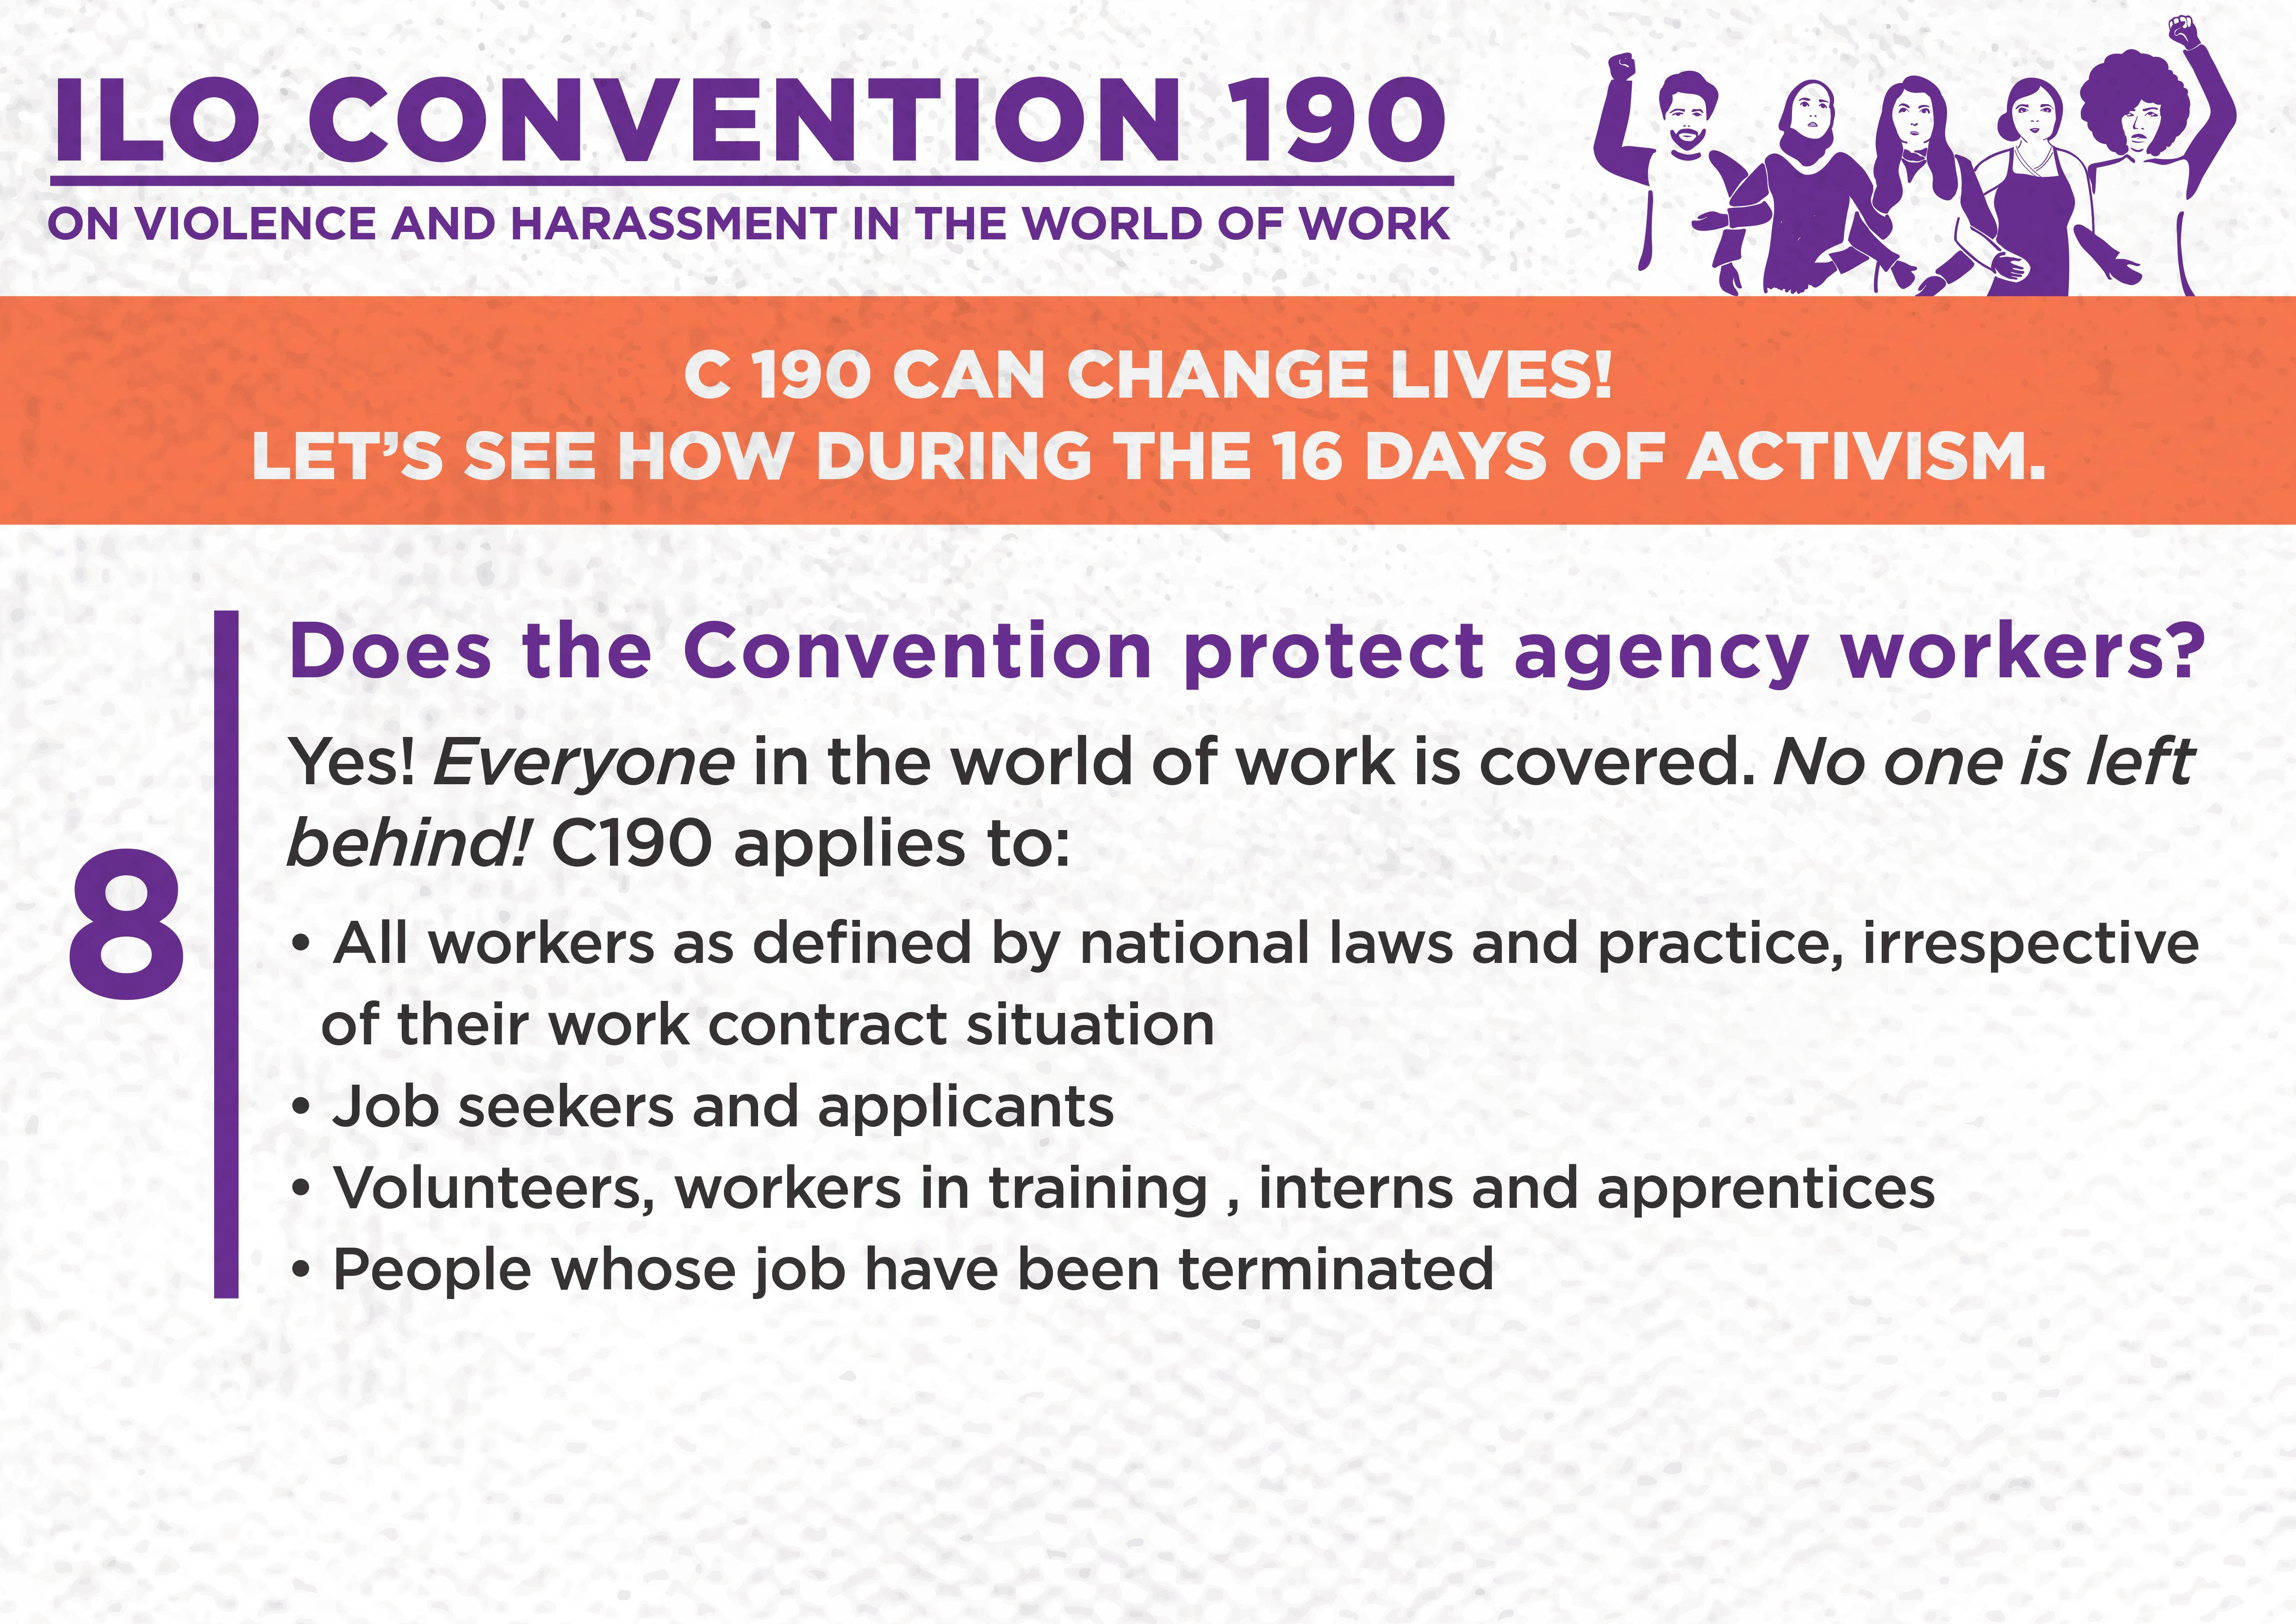 8. Does the Convention protect agency workers?